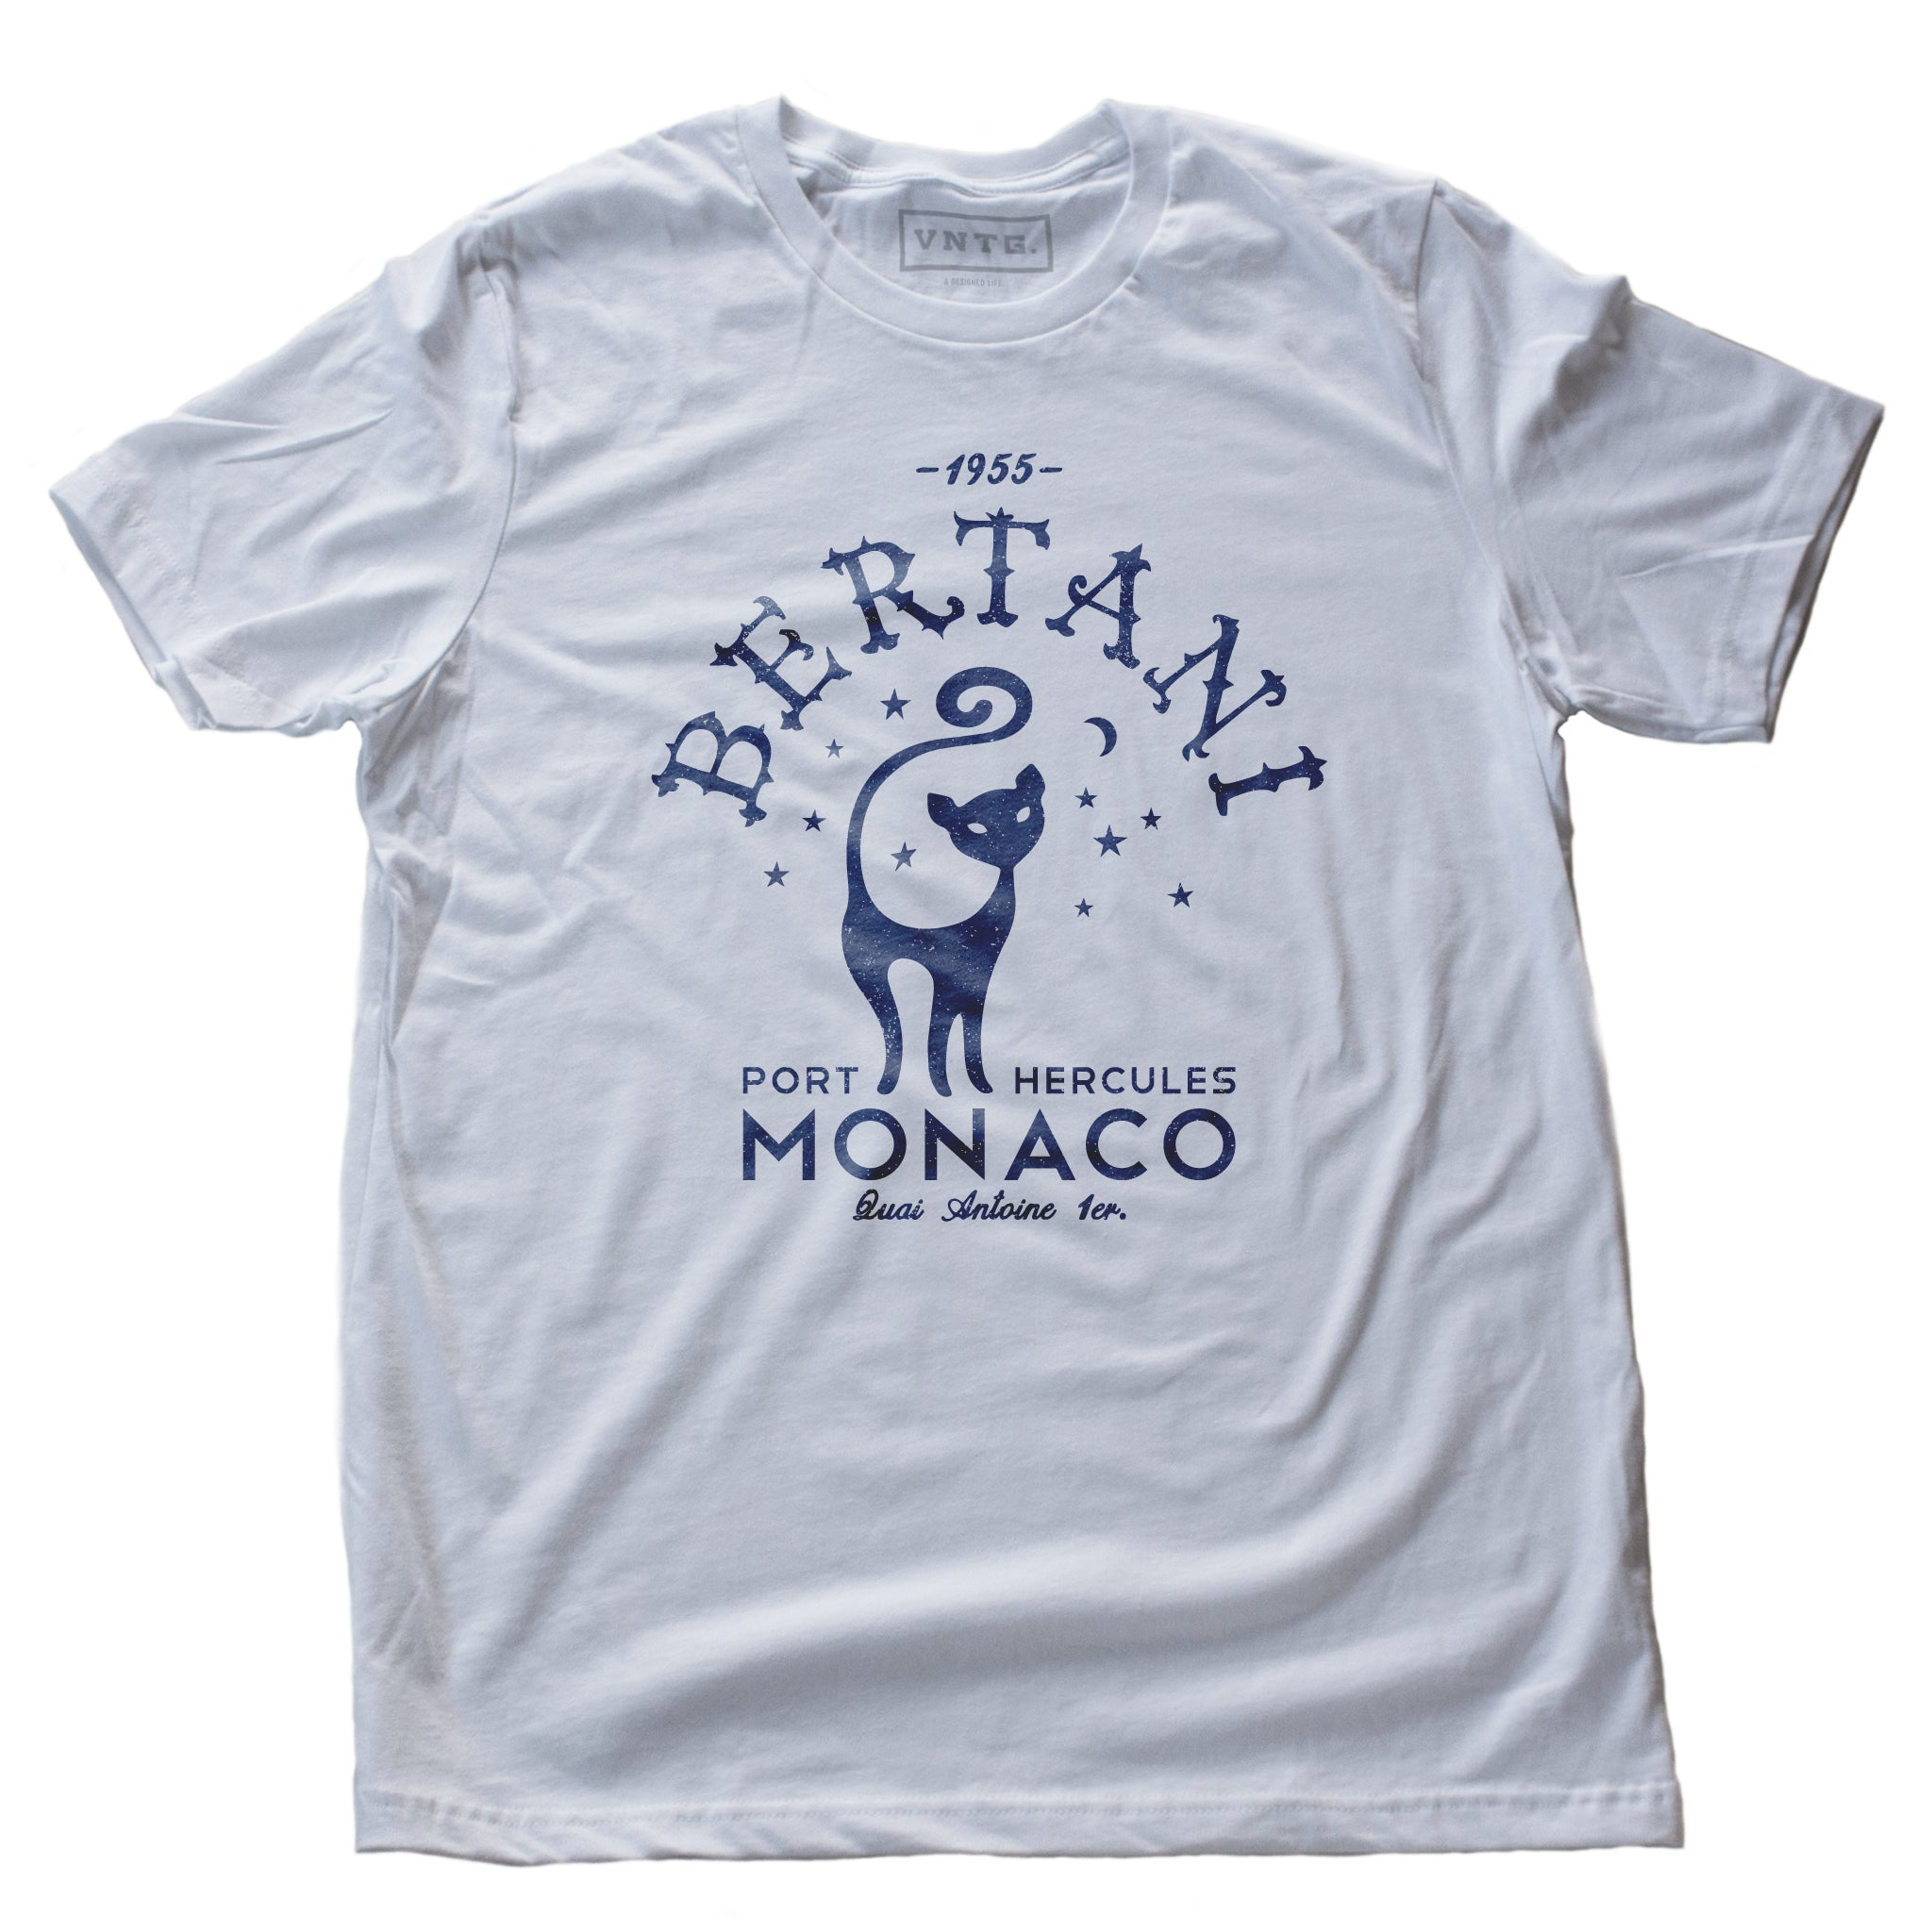 A vintage-look, retro t-shirt that was inspired by the Alfred Hitchcock film To Catch a Thief, and is a tribute to the restaurant Bertani owned by the friend of Cary Grant's character in the film. It features old worlds typography around the image of a cat, meant to symbolize 'John Robie The Cat'—the infamous cat burglar portrayed by Grant and loved by Grace Kelly. This shirt is elegant in Classic White, by fashion brand VNTG., from wolfsaint.net